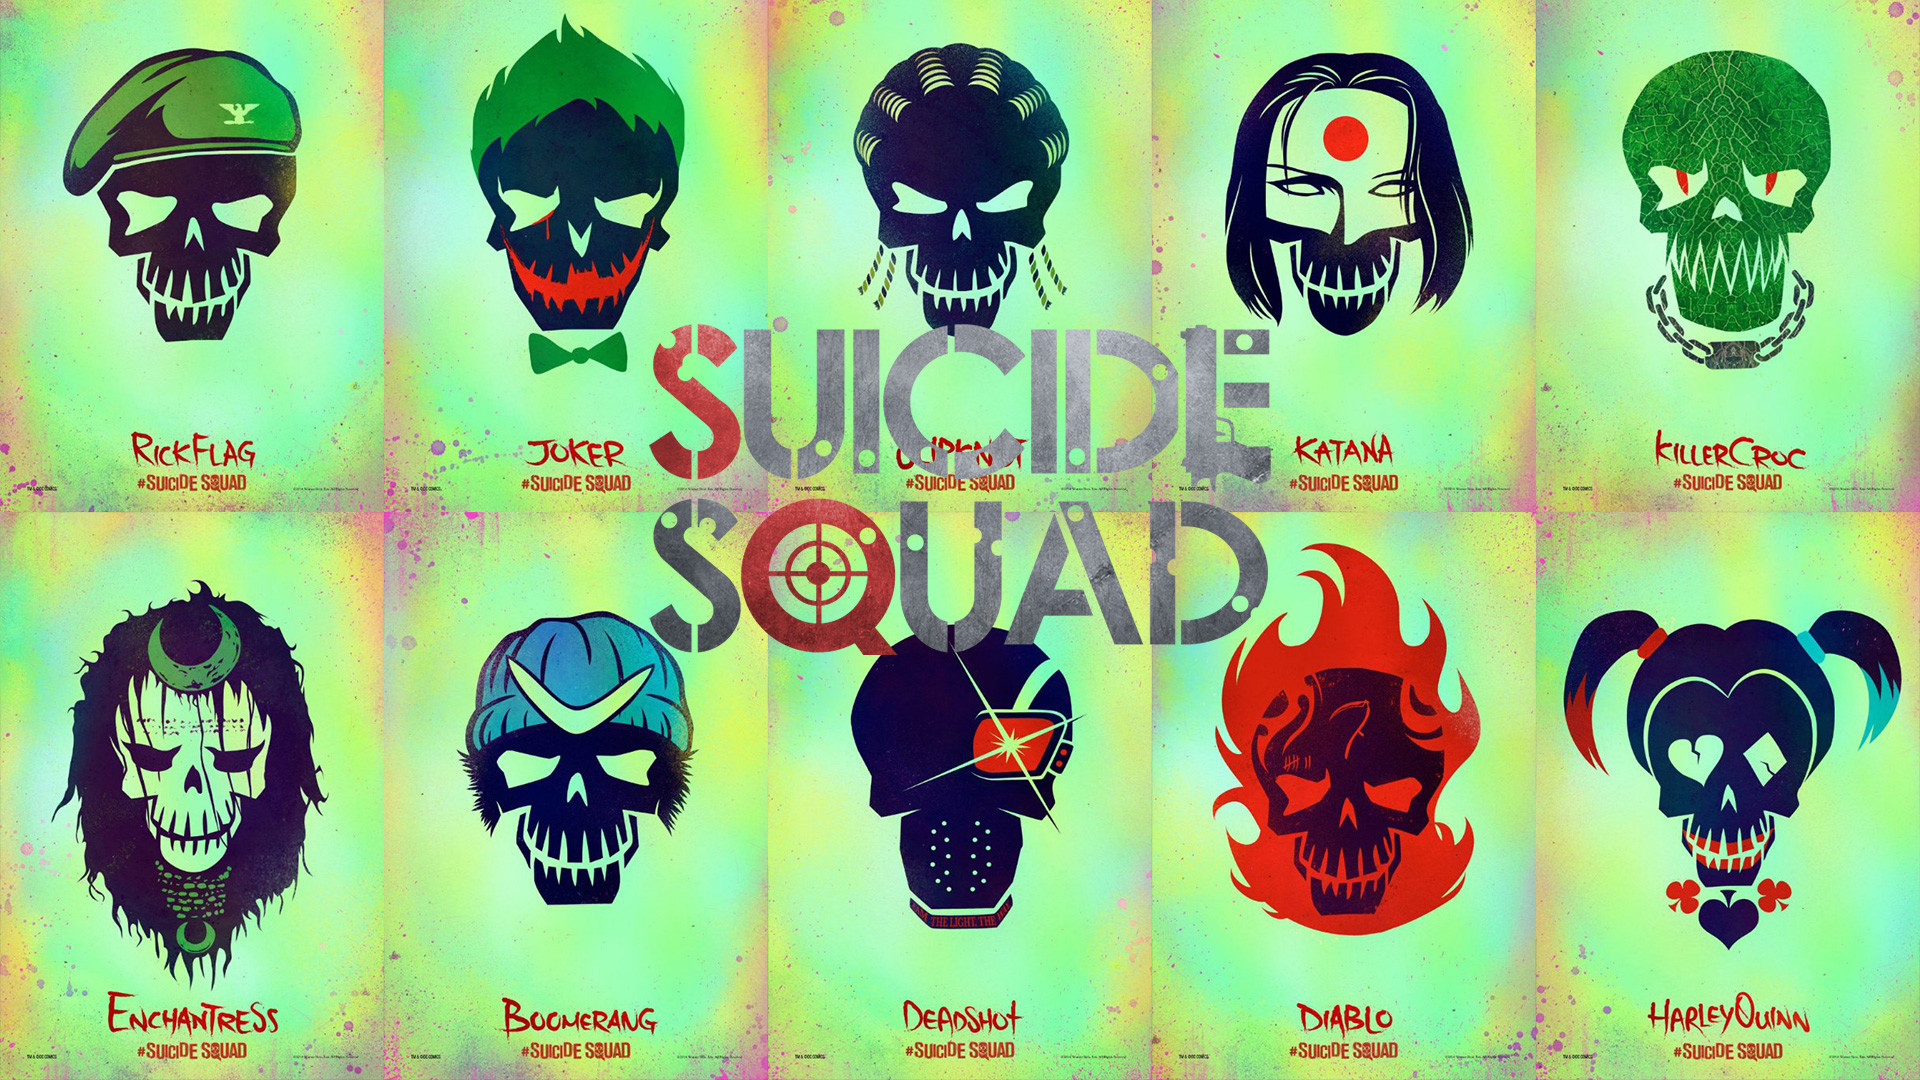 1920x1080 Suicide Squad movie wallpaper hd Free HD Wallpapers, Images, Stock .